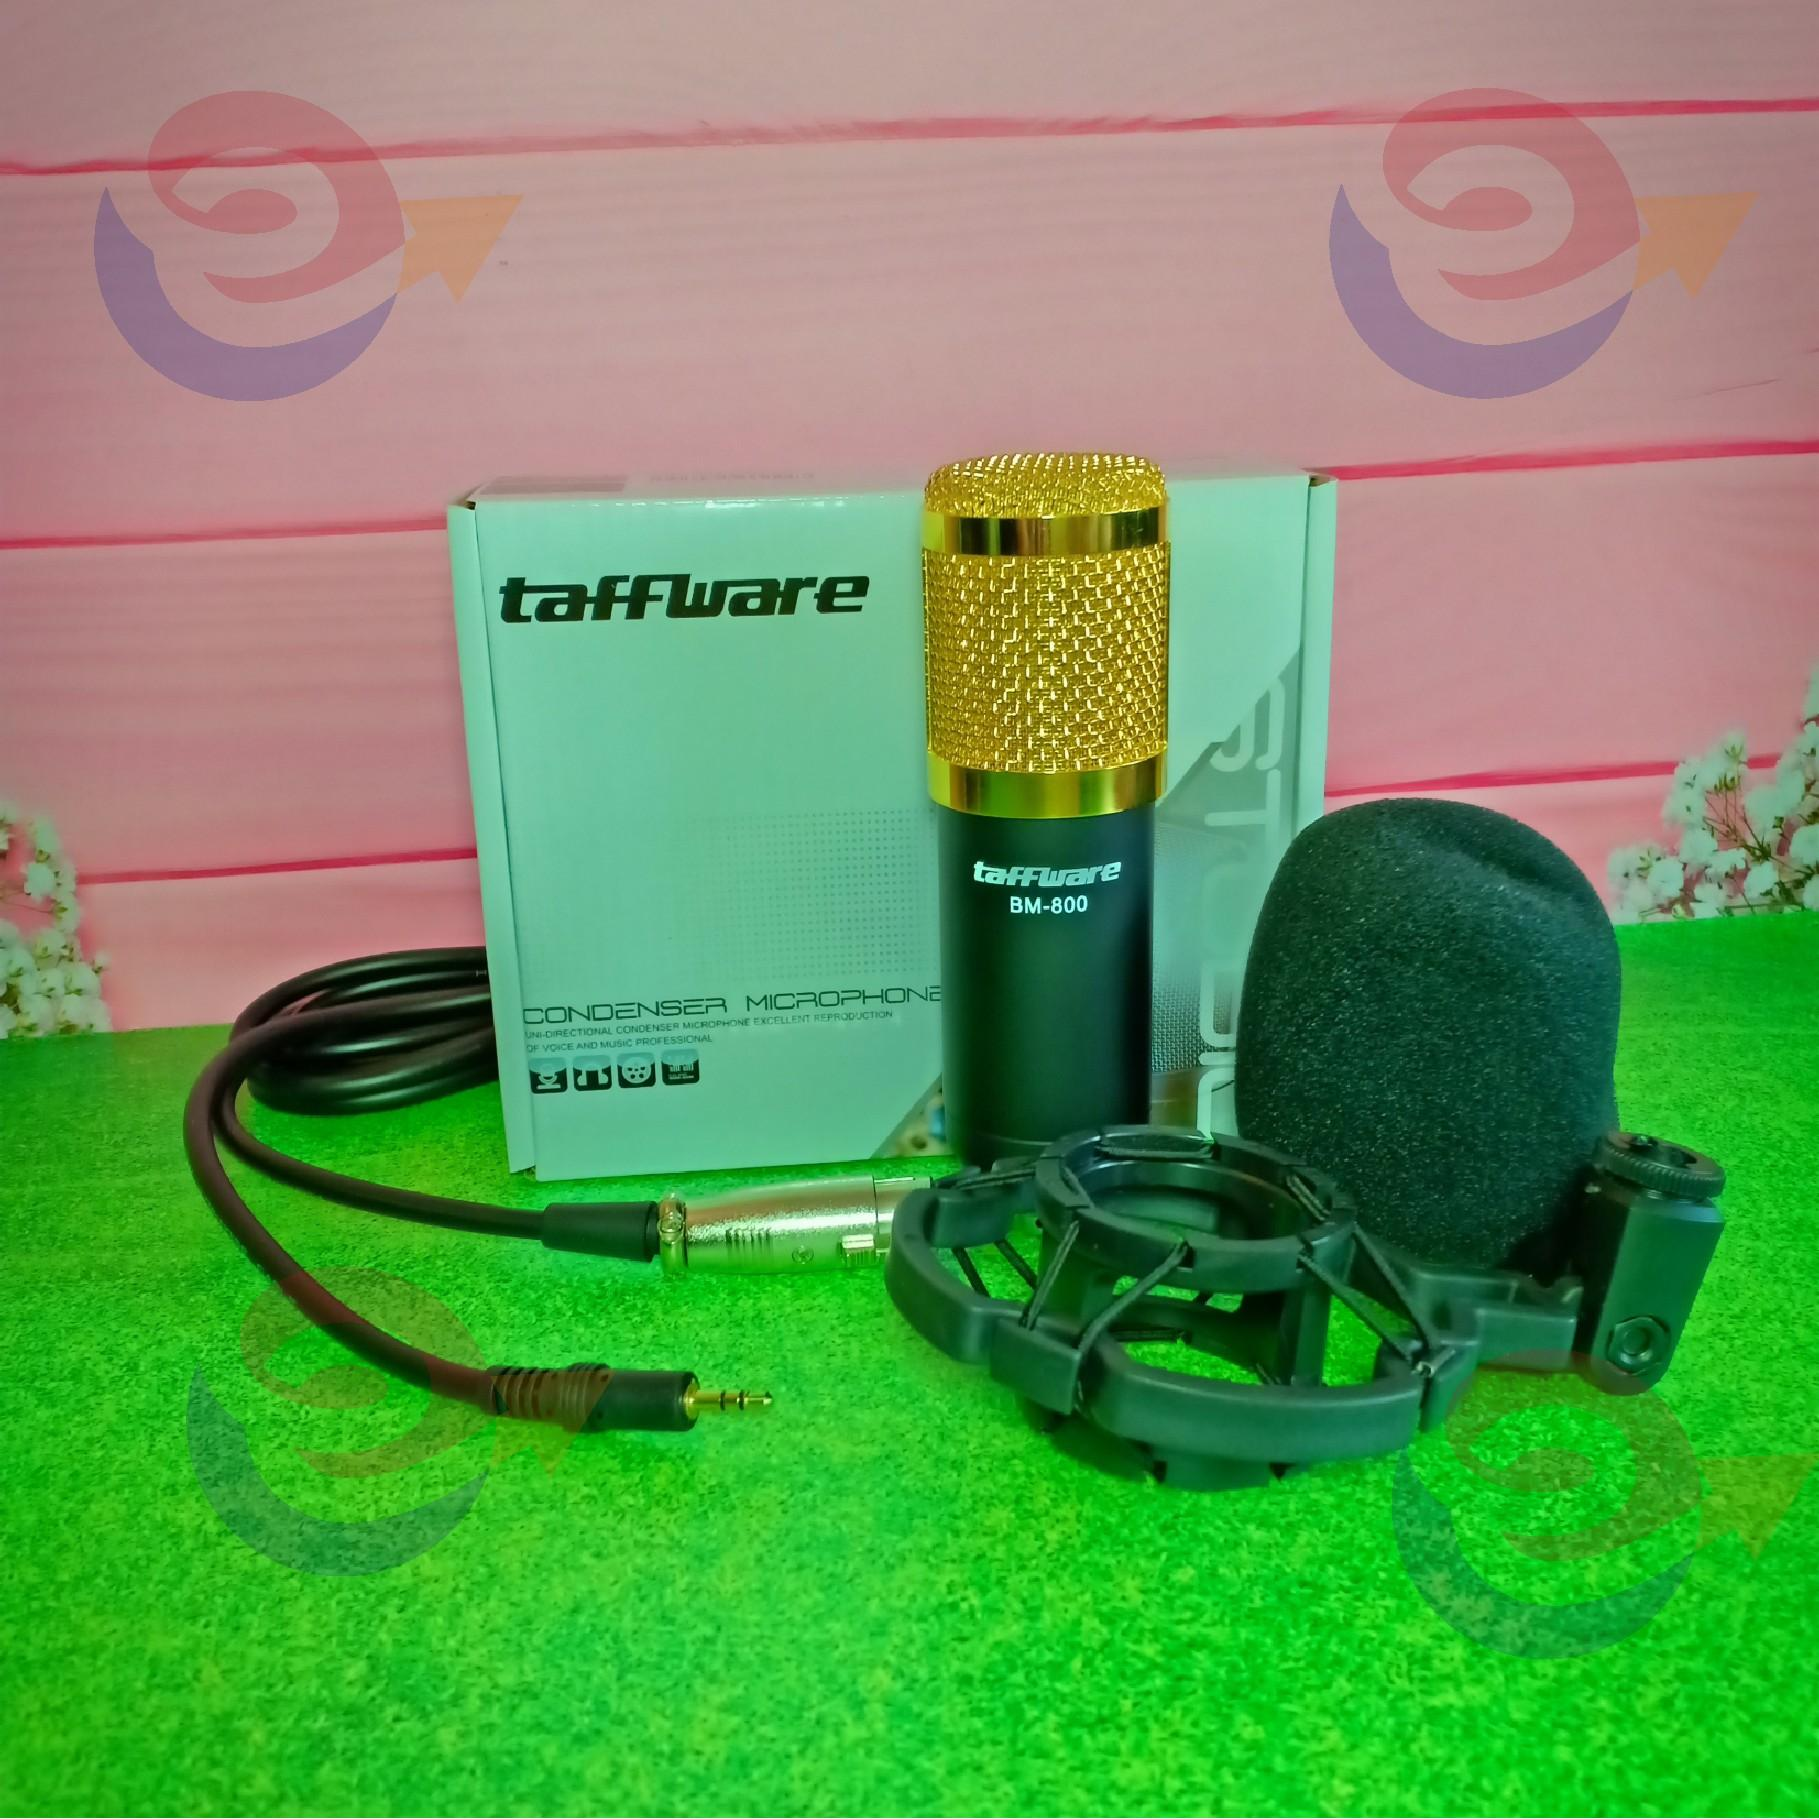 BM800 Condenser Microphone Sound Recording With Mic Shock Mount3.5Mm Audio Cable Foam Cap For Pc Laptop Radio Broadcasting Studio voice-Over Sound Recording